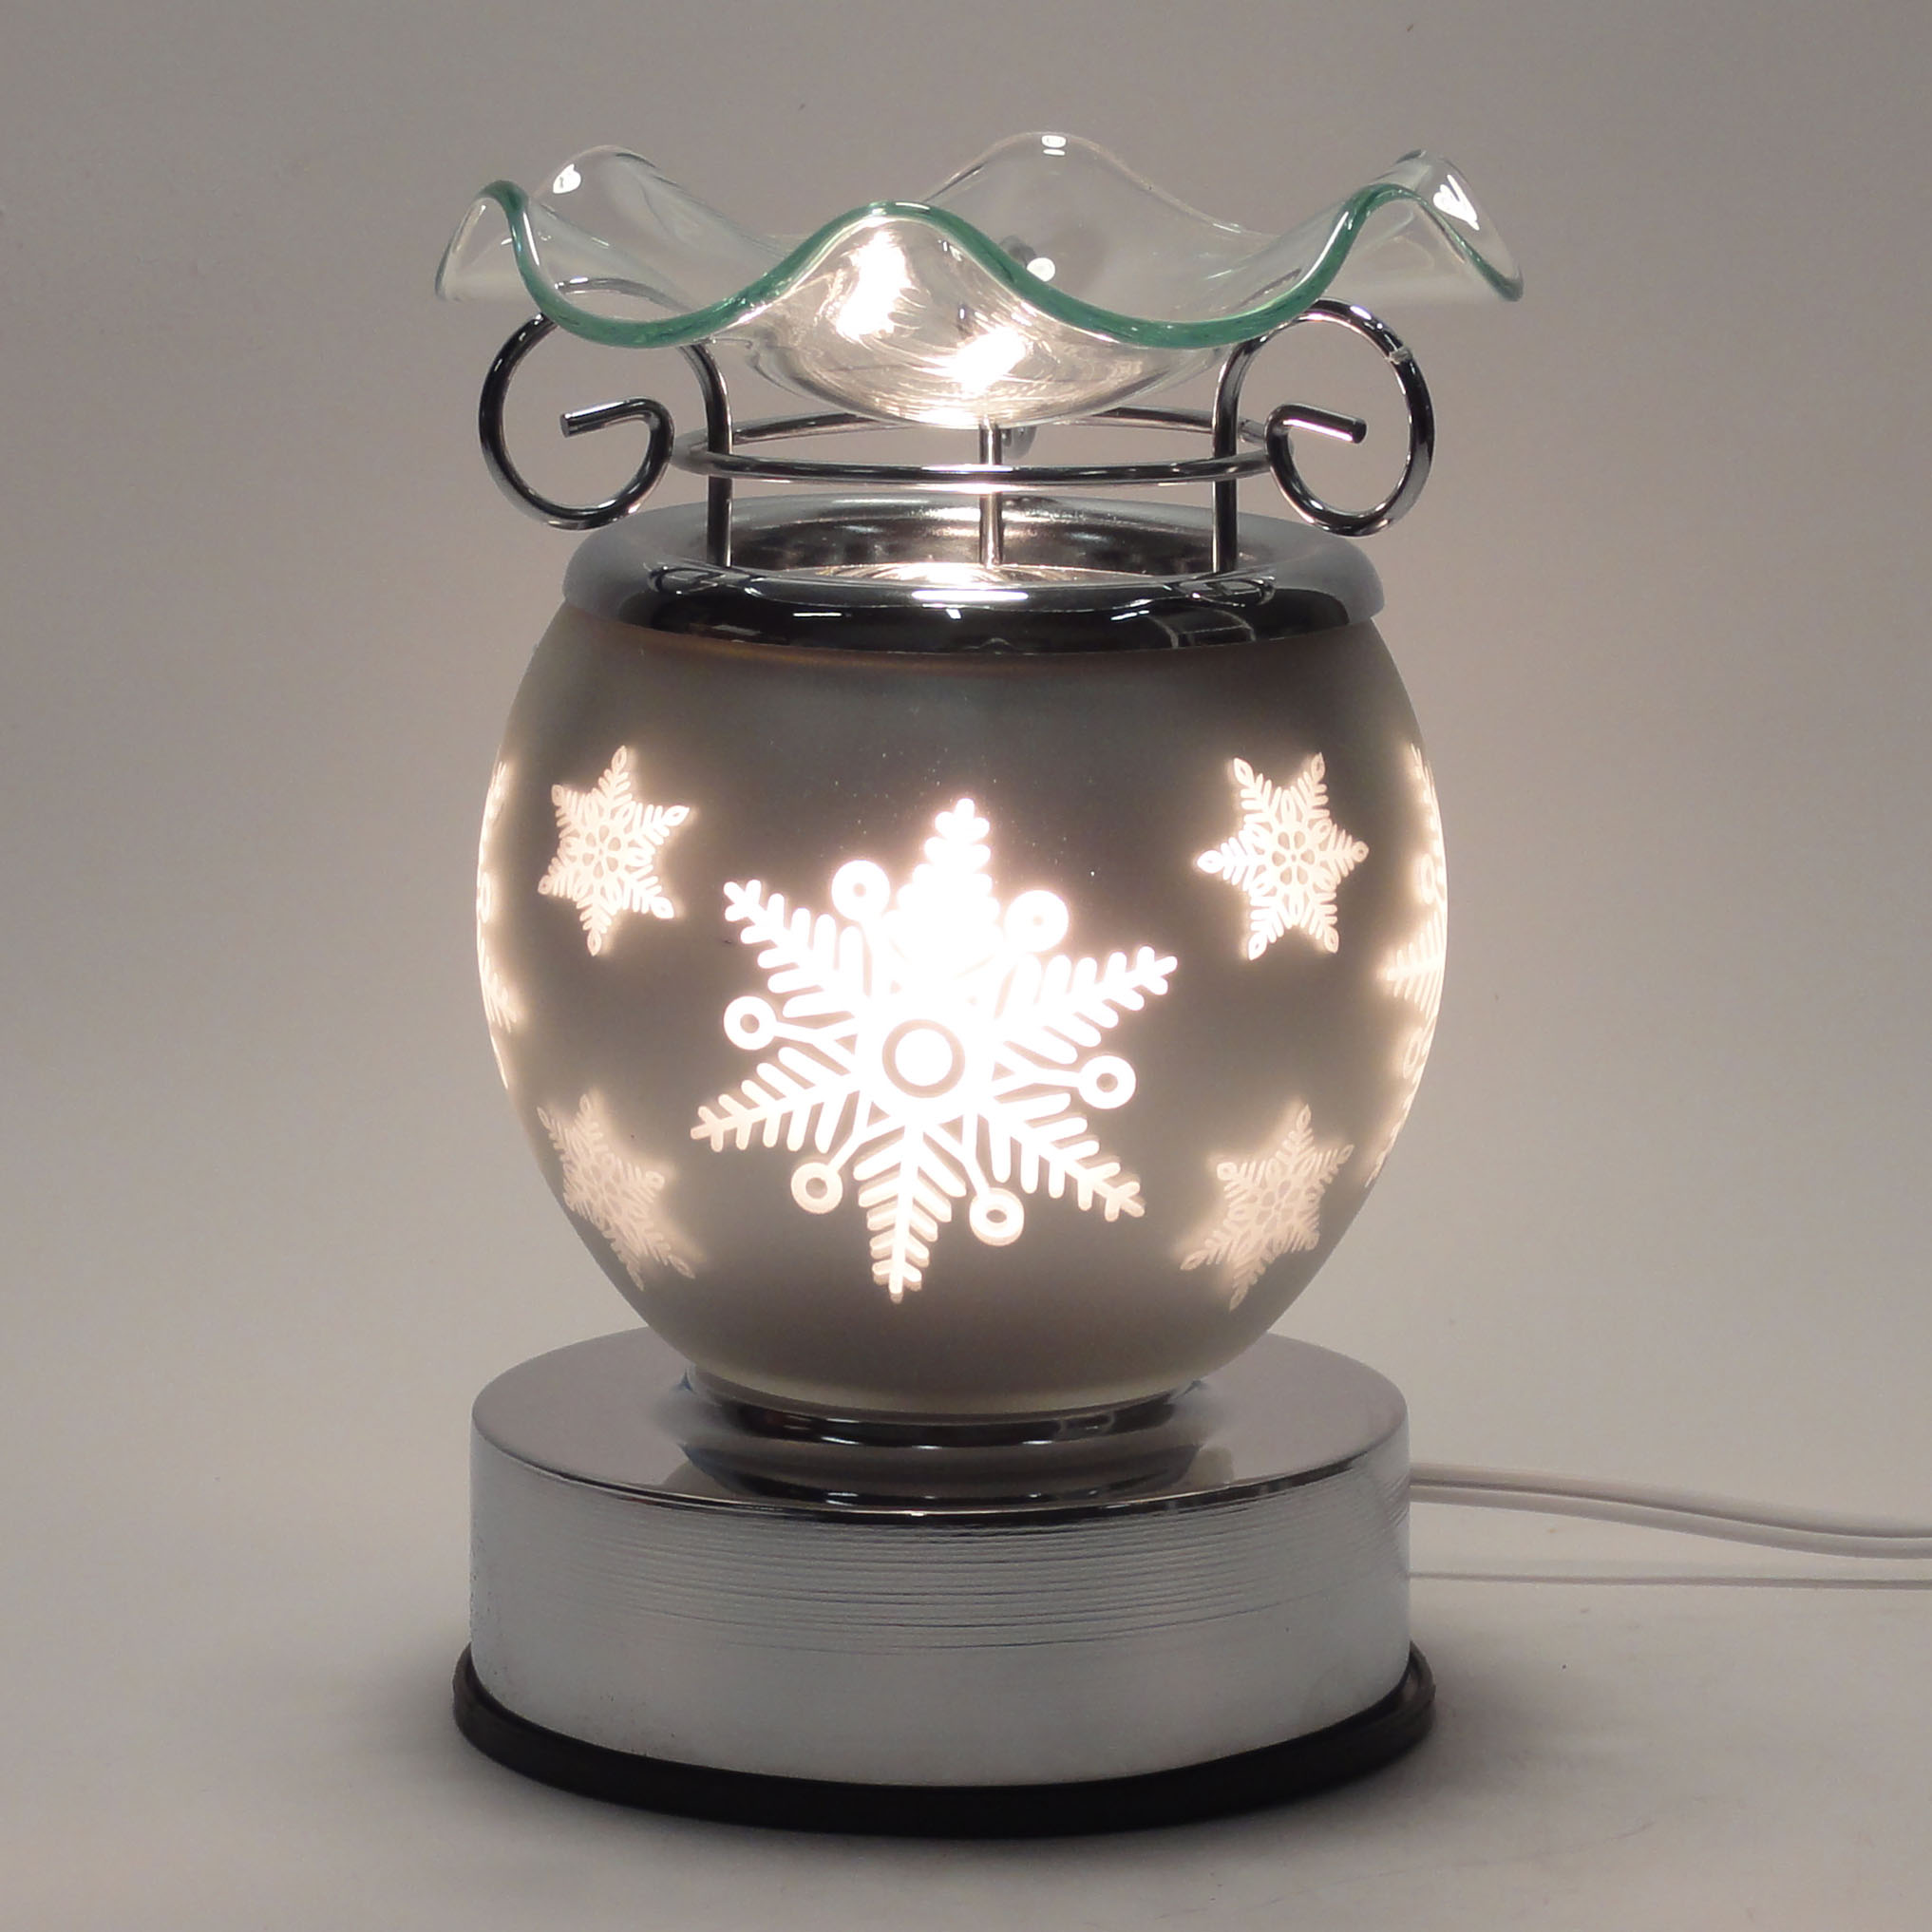 Aroma night lamps - Fragrance Oil Warmer Touch Sensitive Decorative Electric Glass Fragrance Lamp Burner Diffuser Night Light In Gift Box